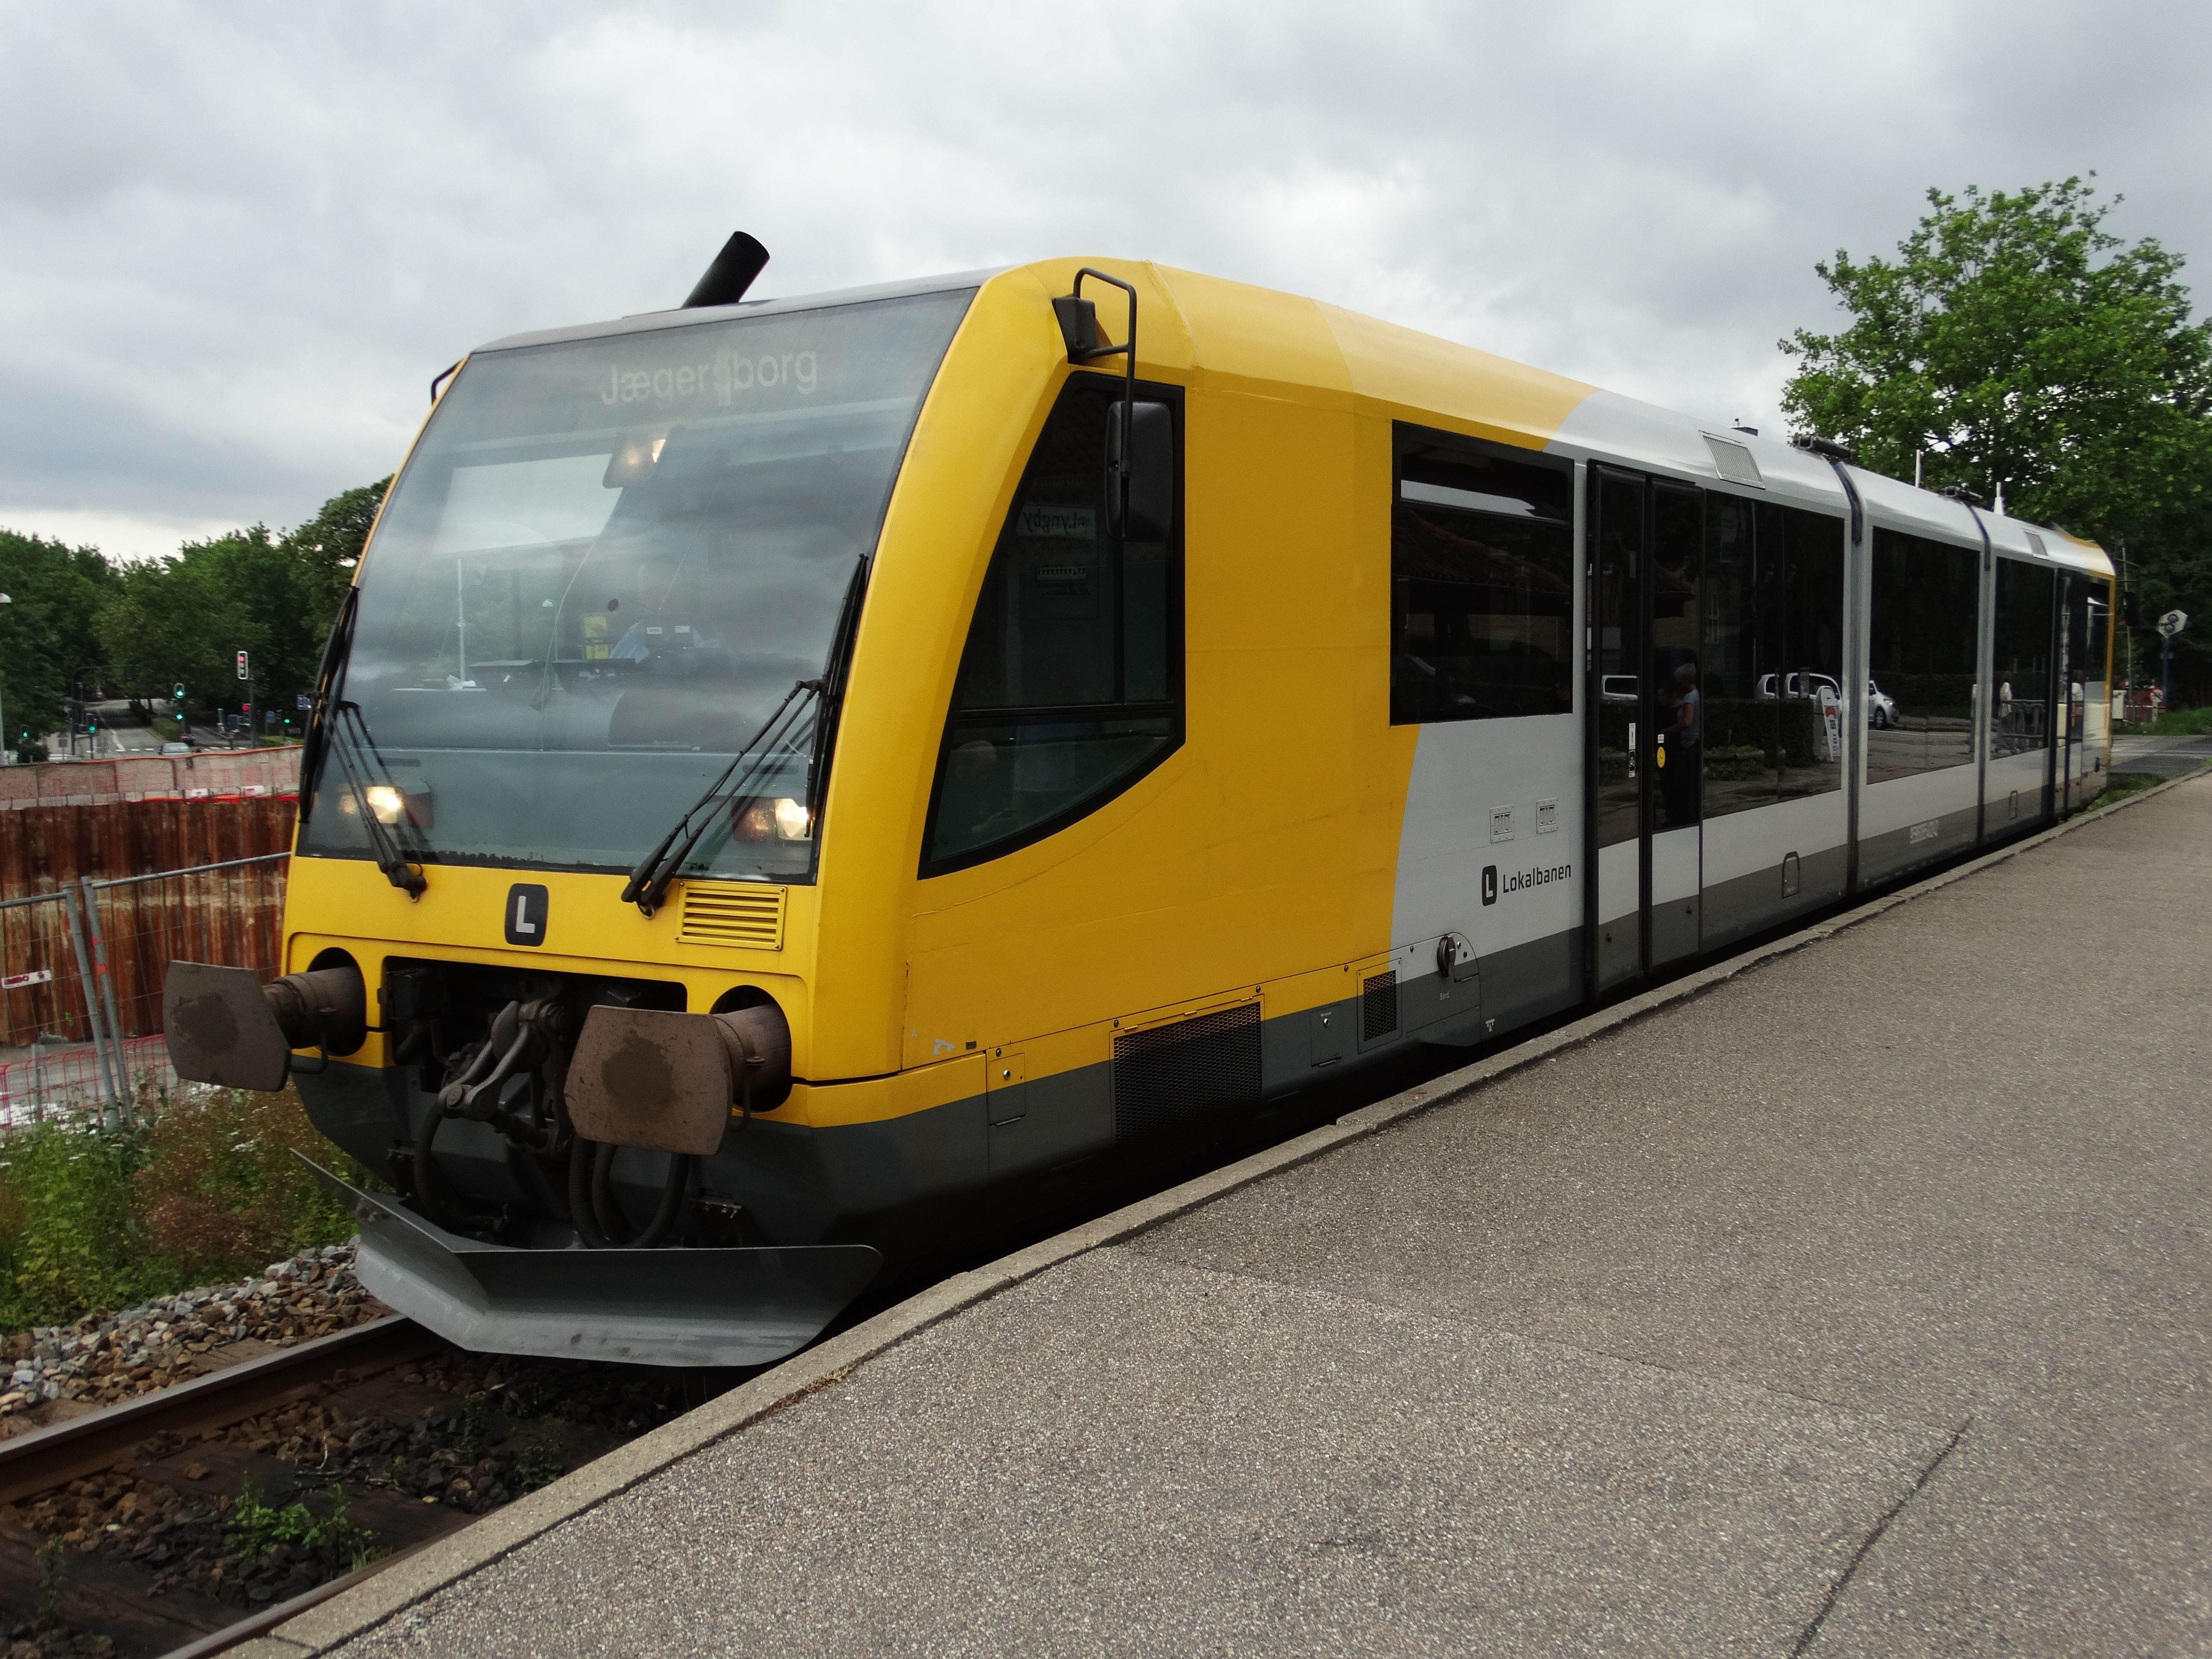 FUNET Railway Photography Archive: Denmark - private rail